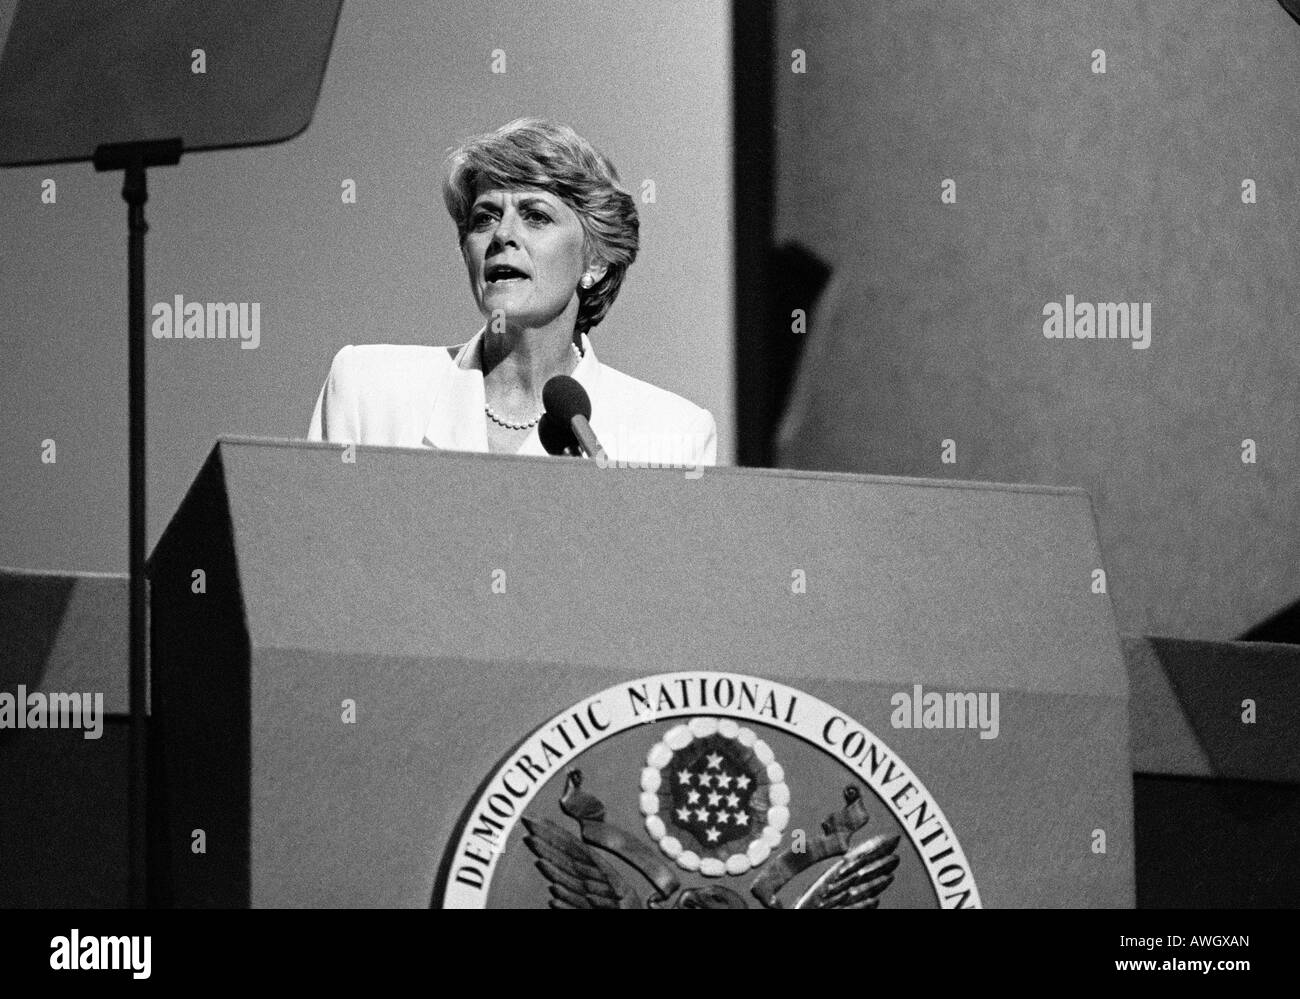 Geraldine Ferraro accepts Democratic party VP nomination at convention - Stock Image